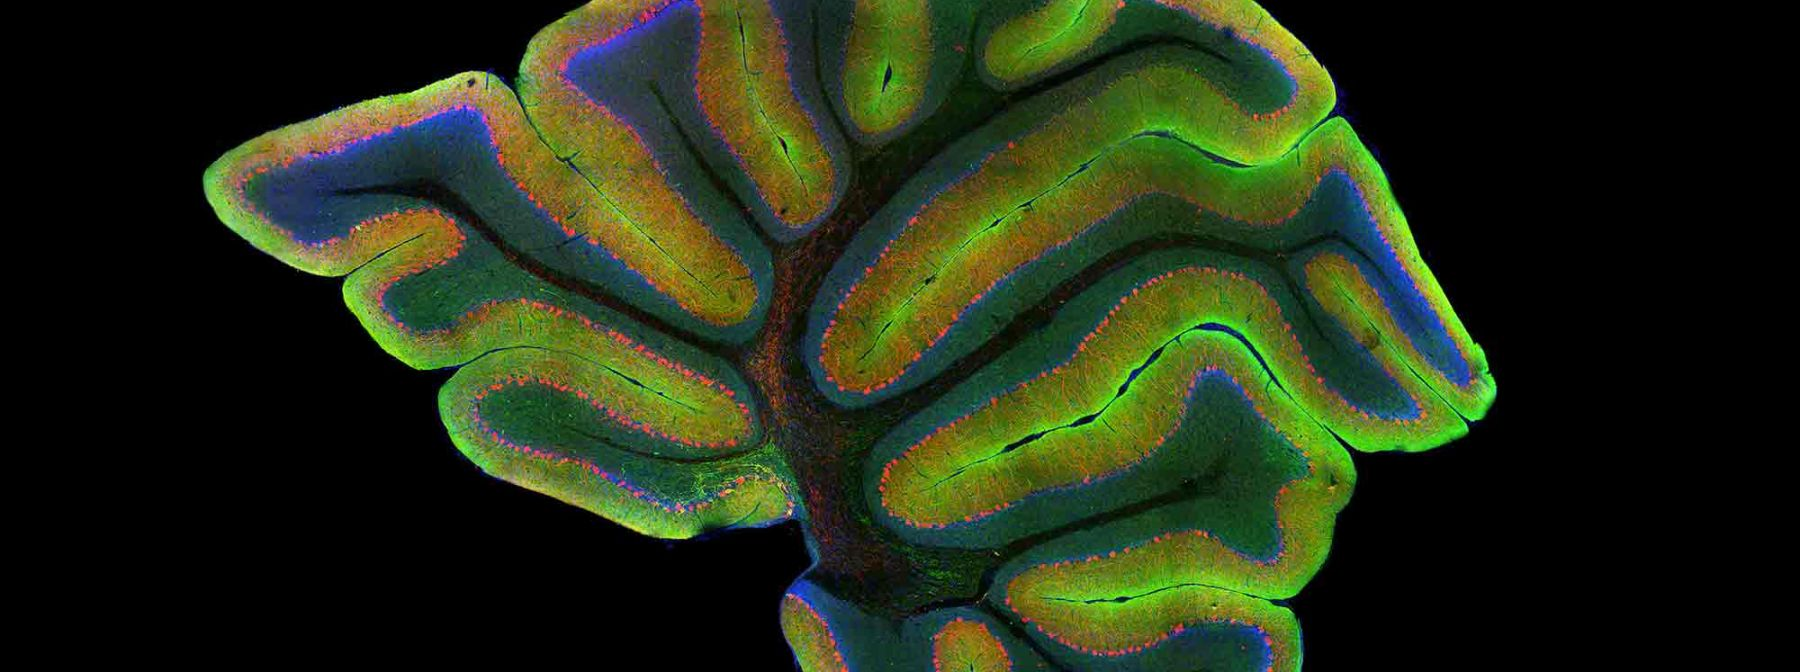 Laser scanning confocal image of a mouse cerebellum.